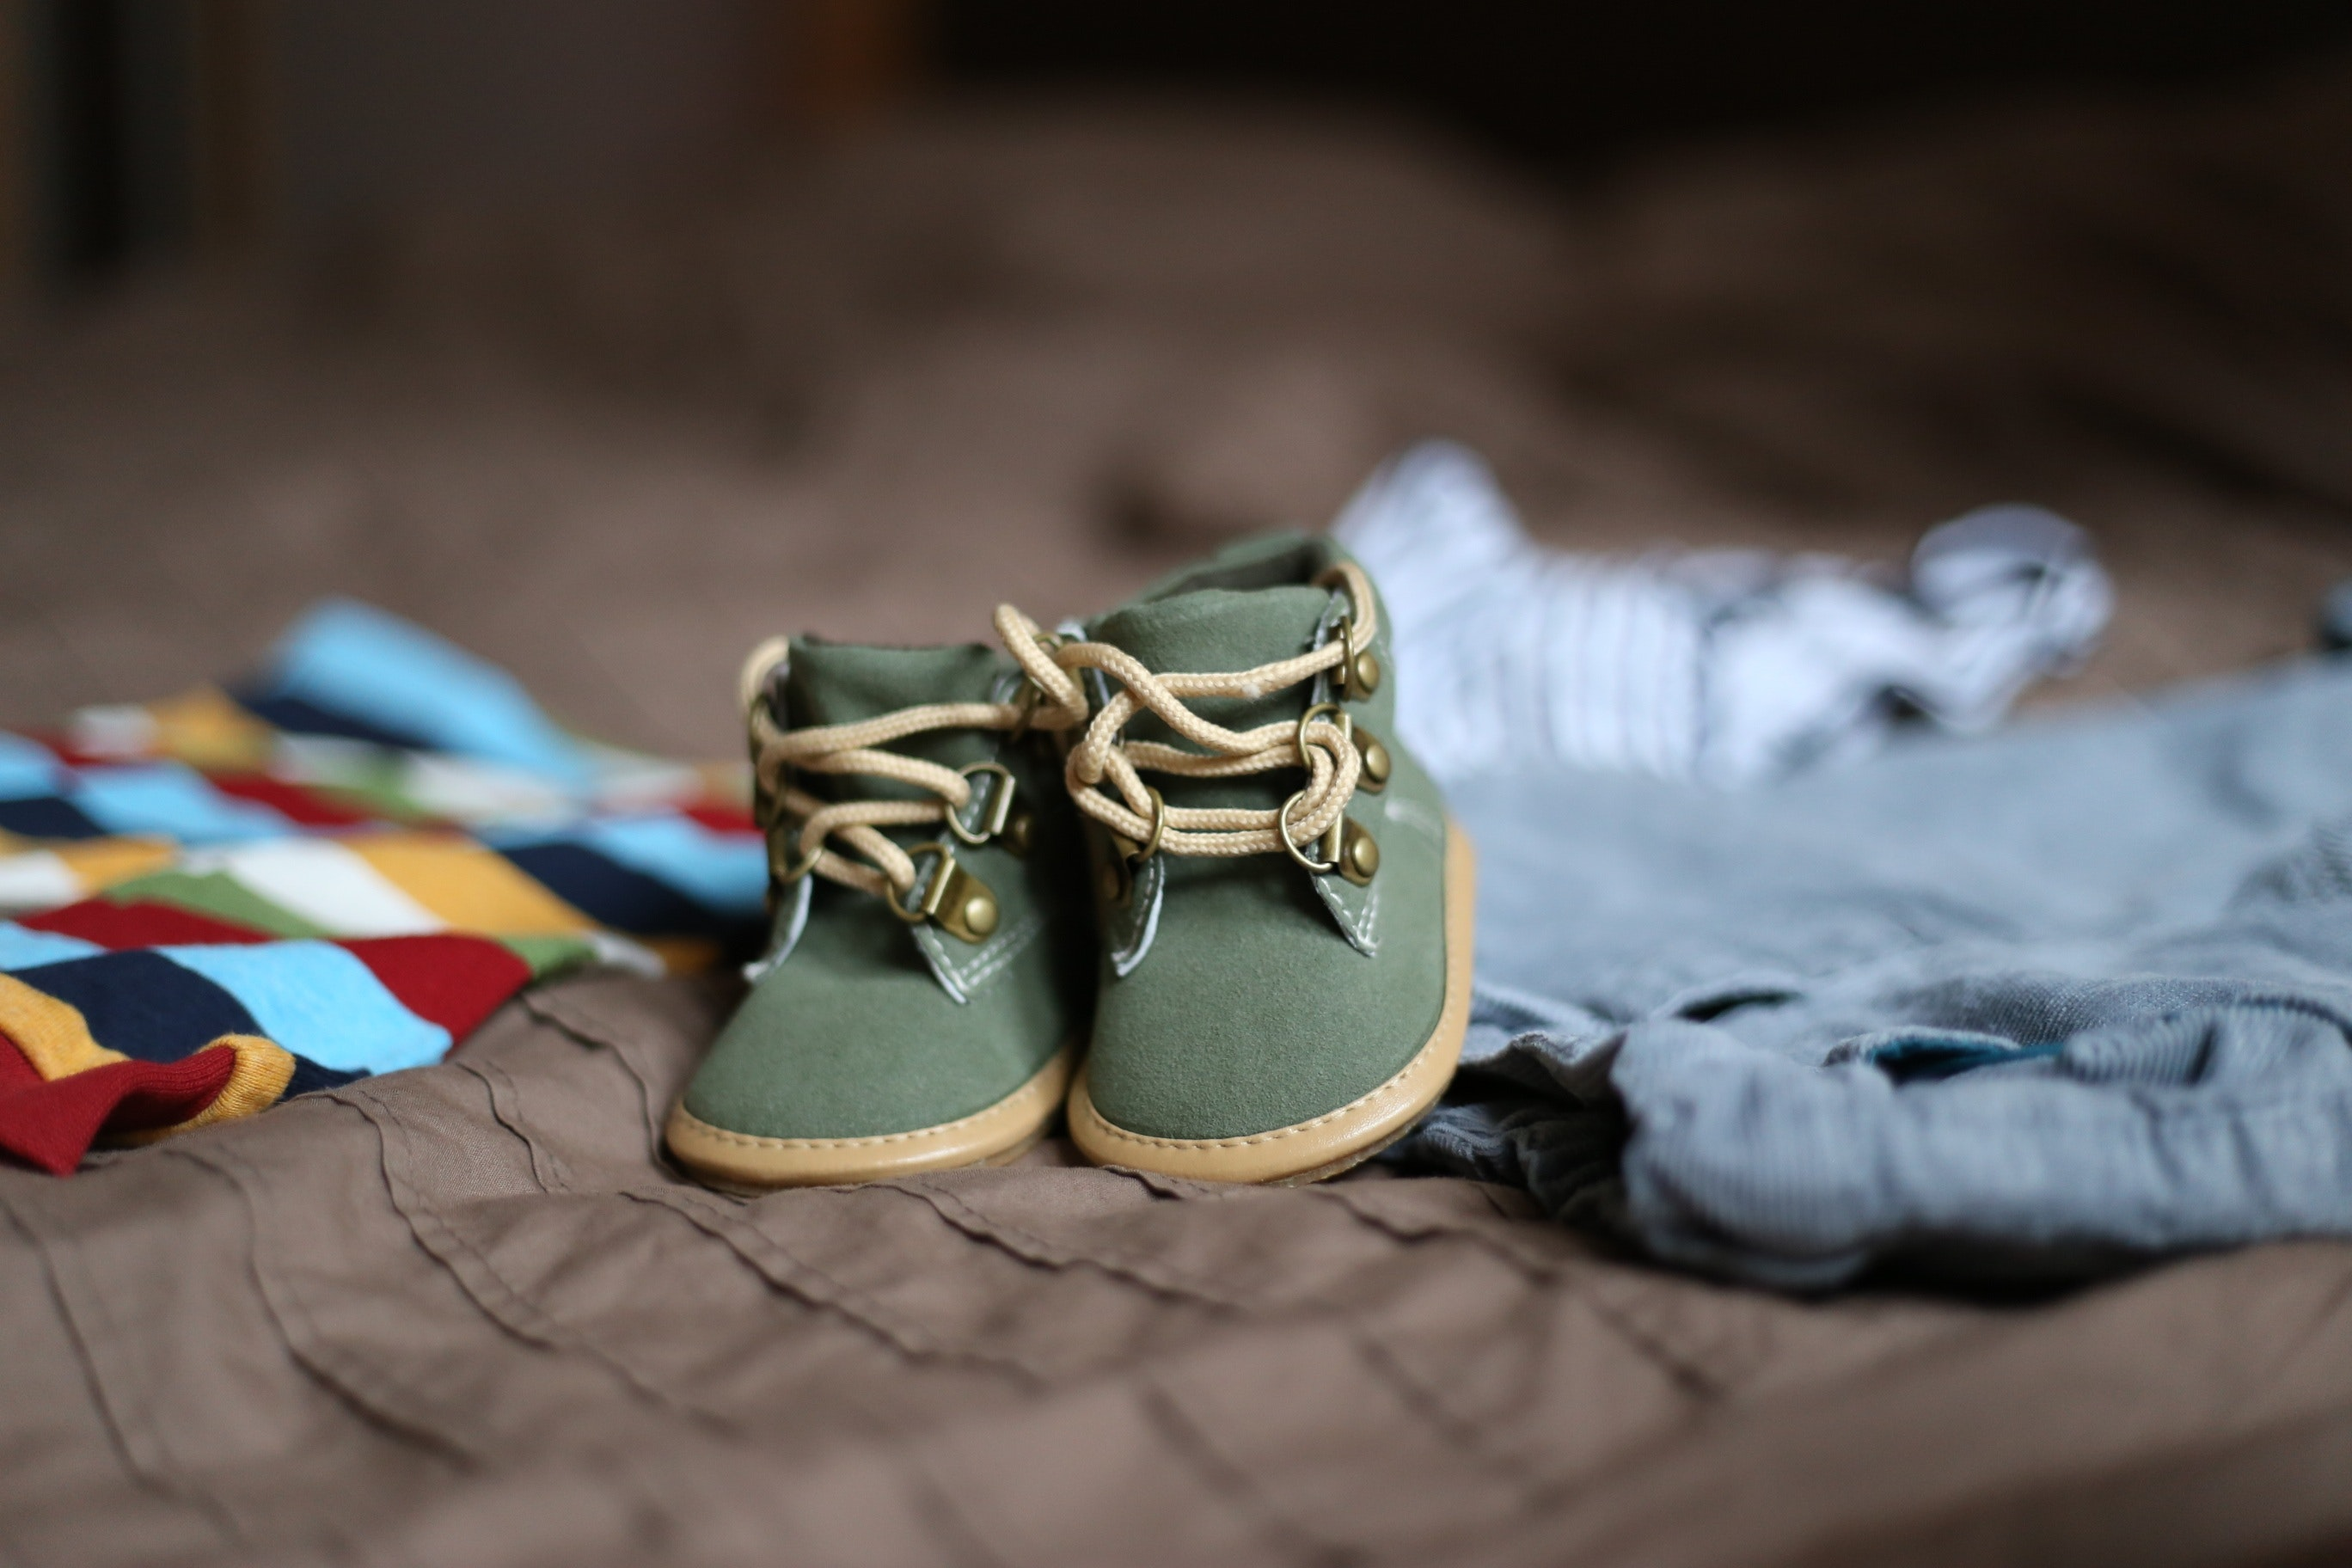 shoes-child-clothing-pregnancy-47220